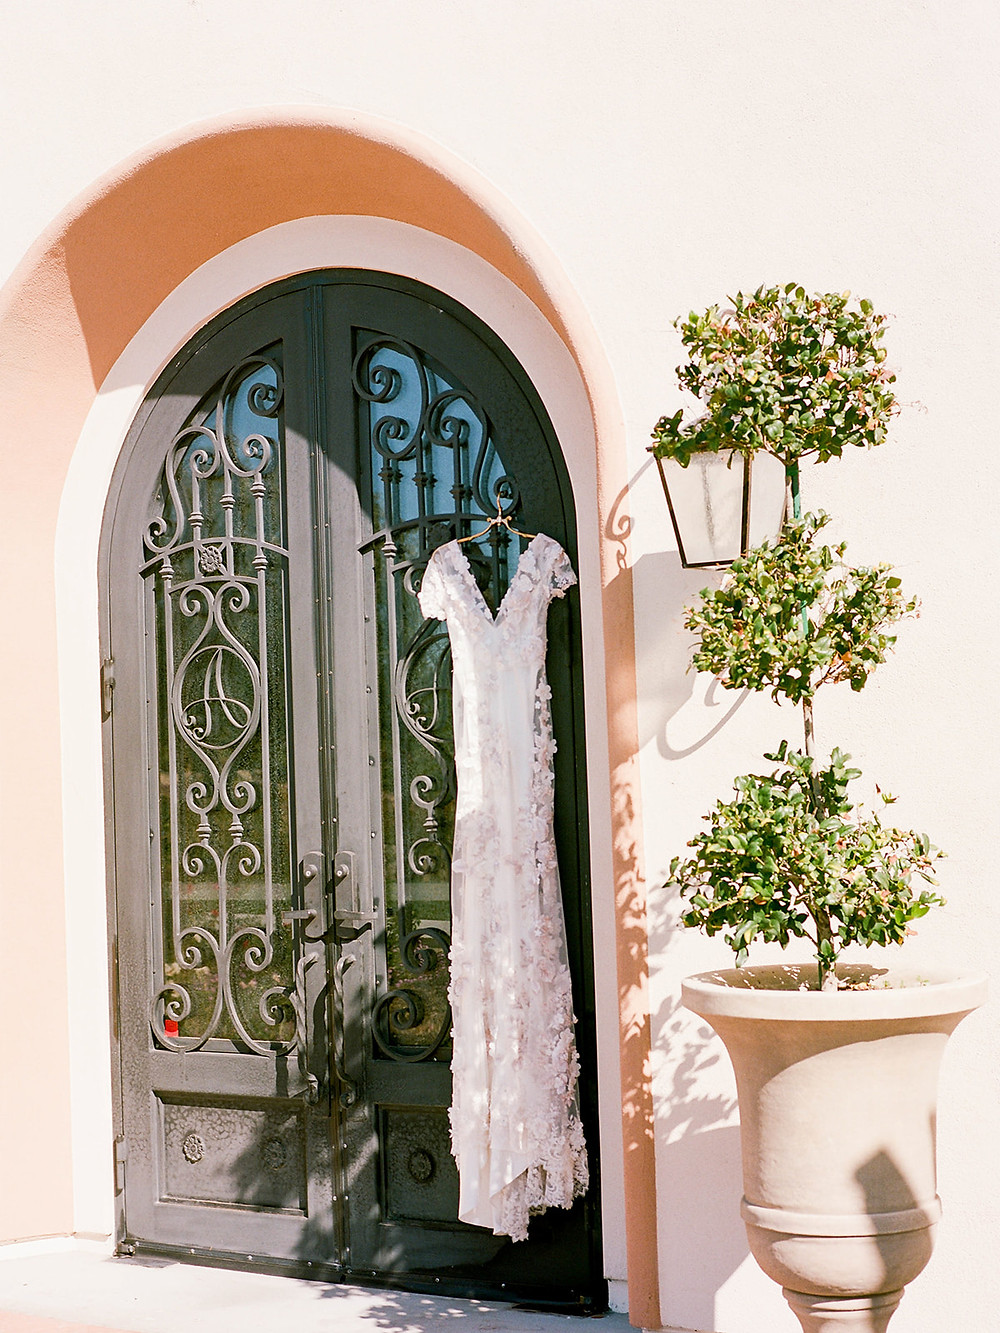 wedding dress hanging in door at Avensole Winery